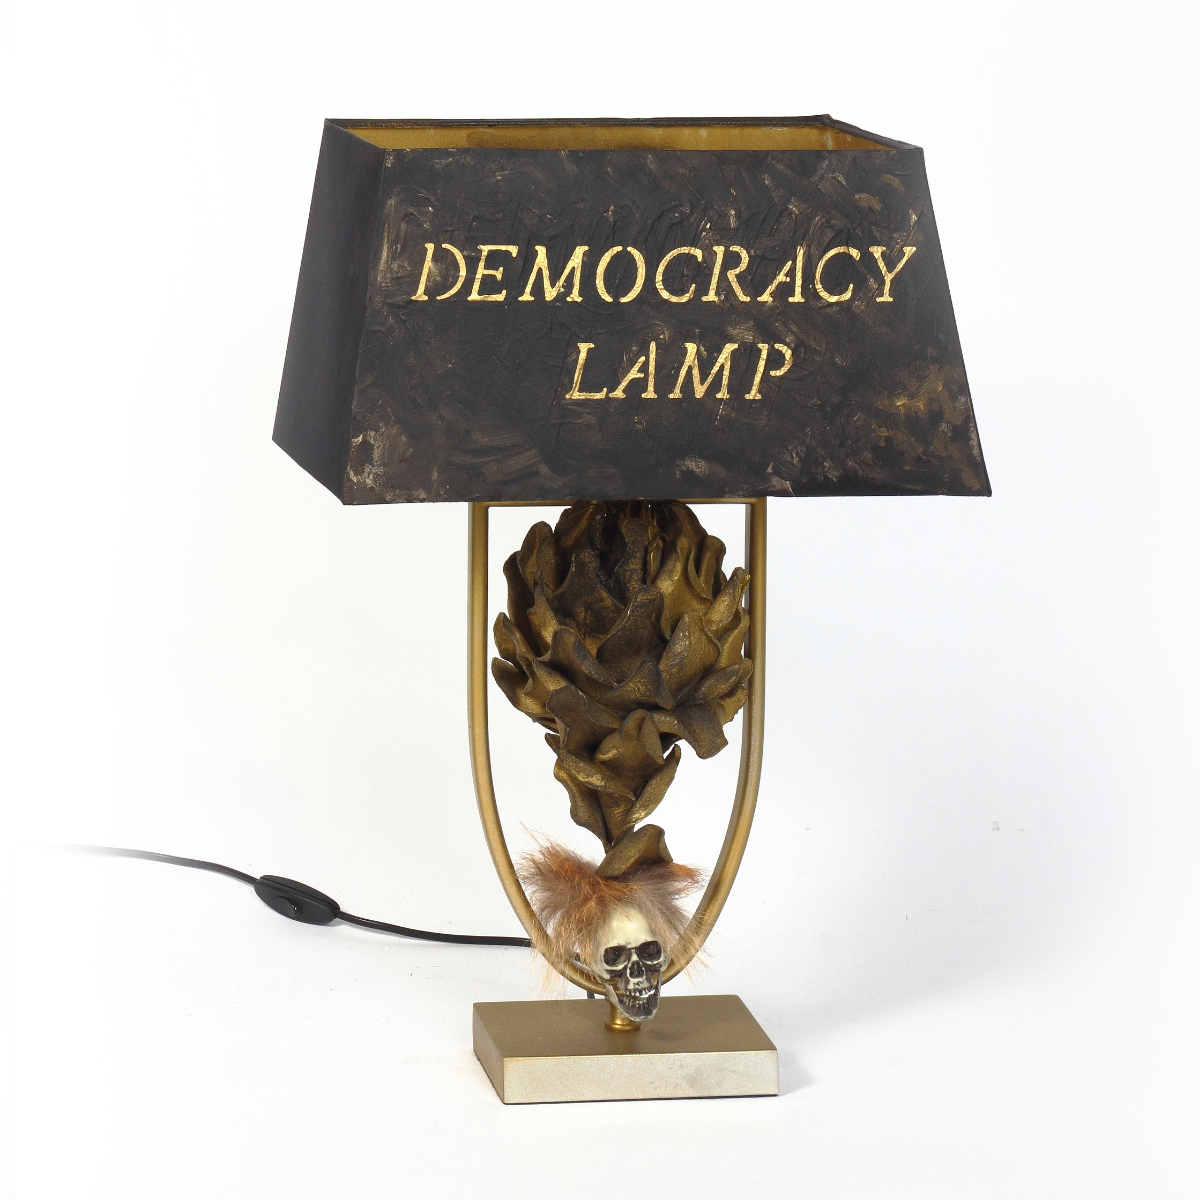 DEMOCRACY LAMP, 2017, sculpture